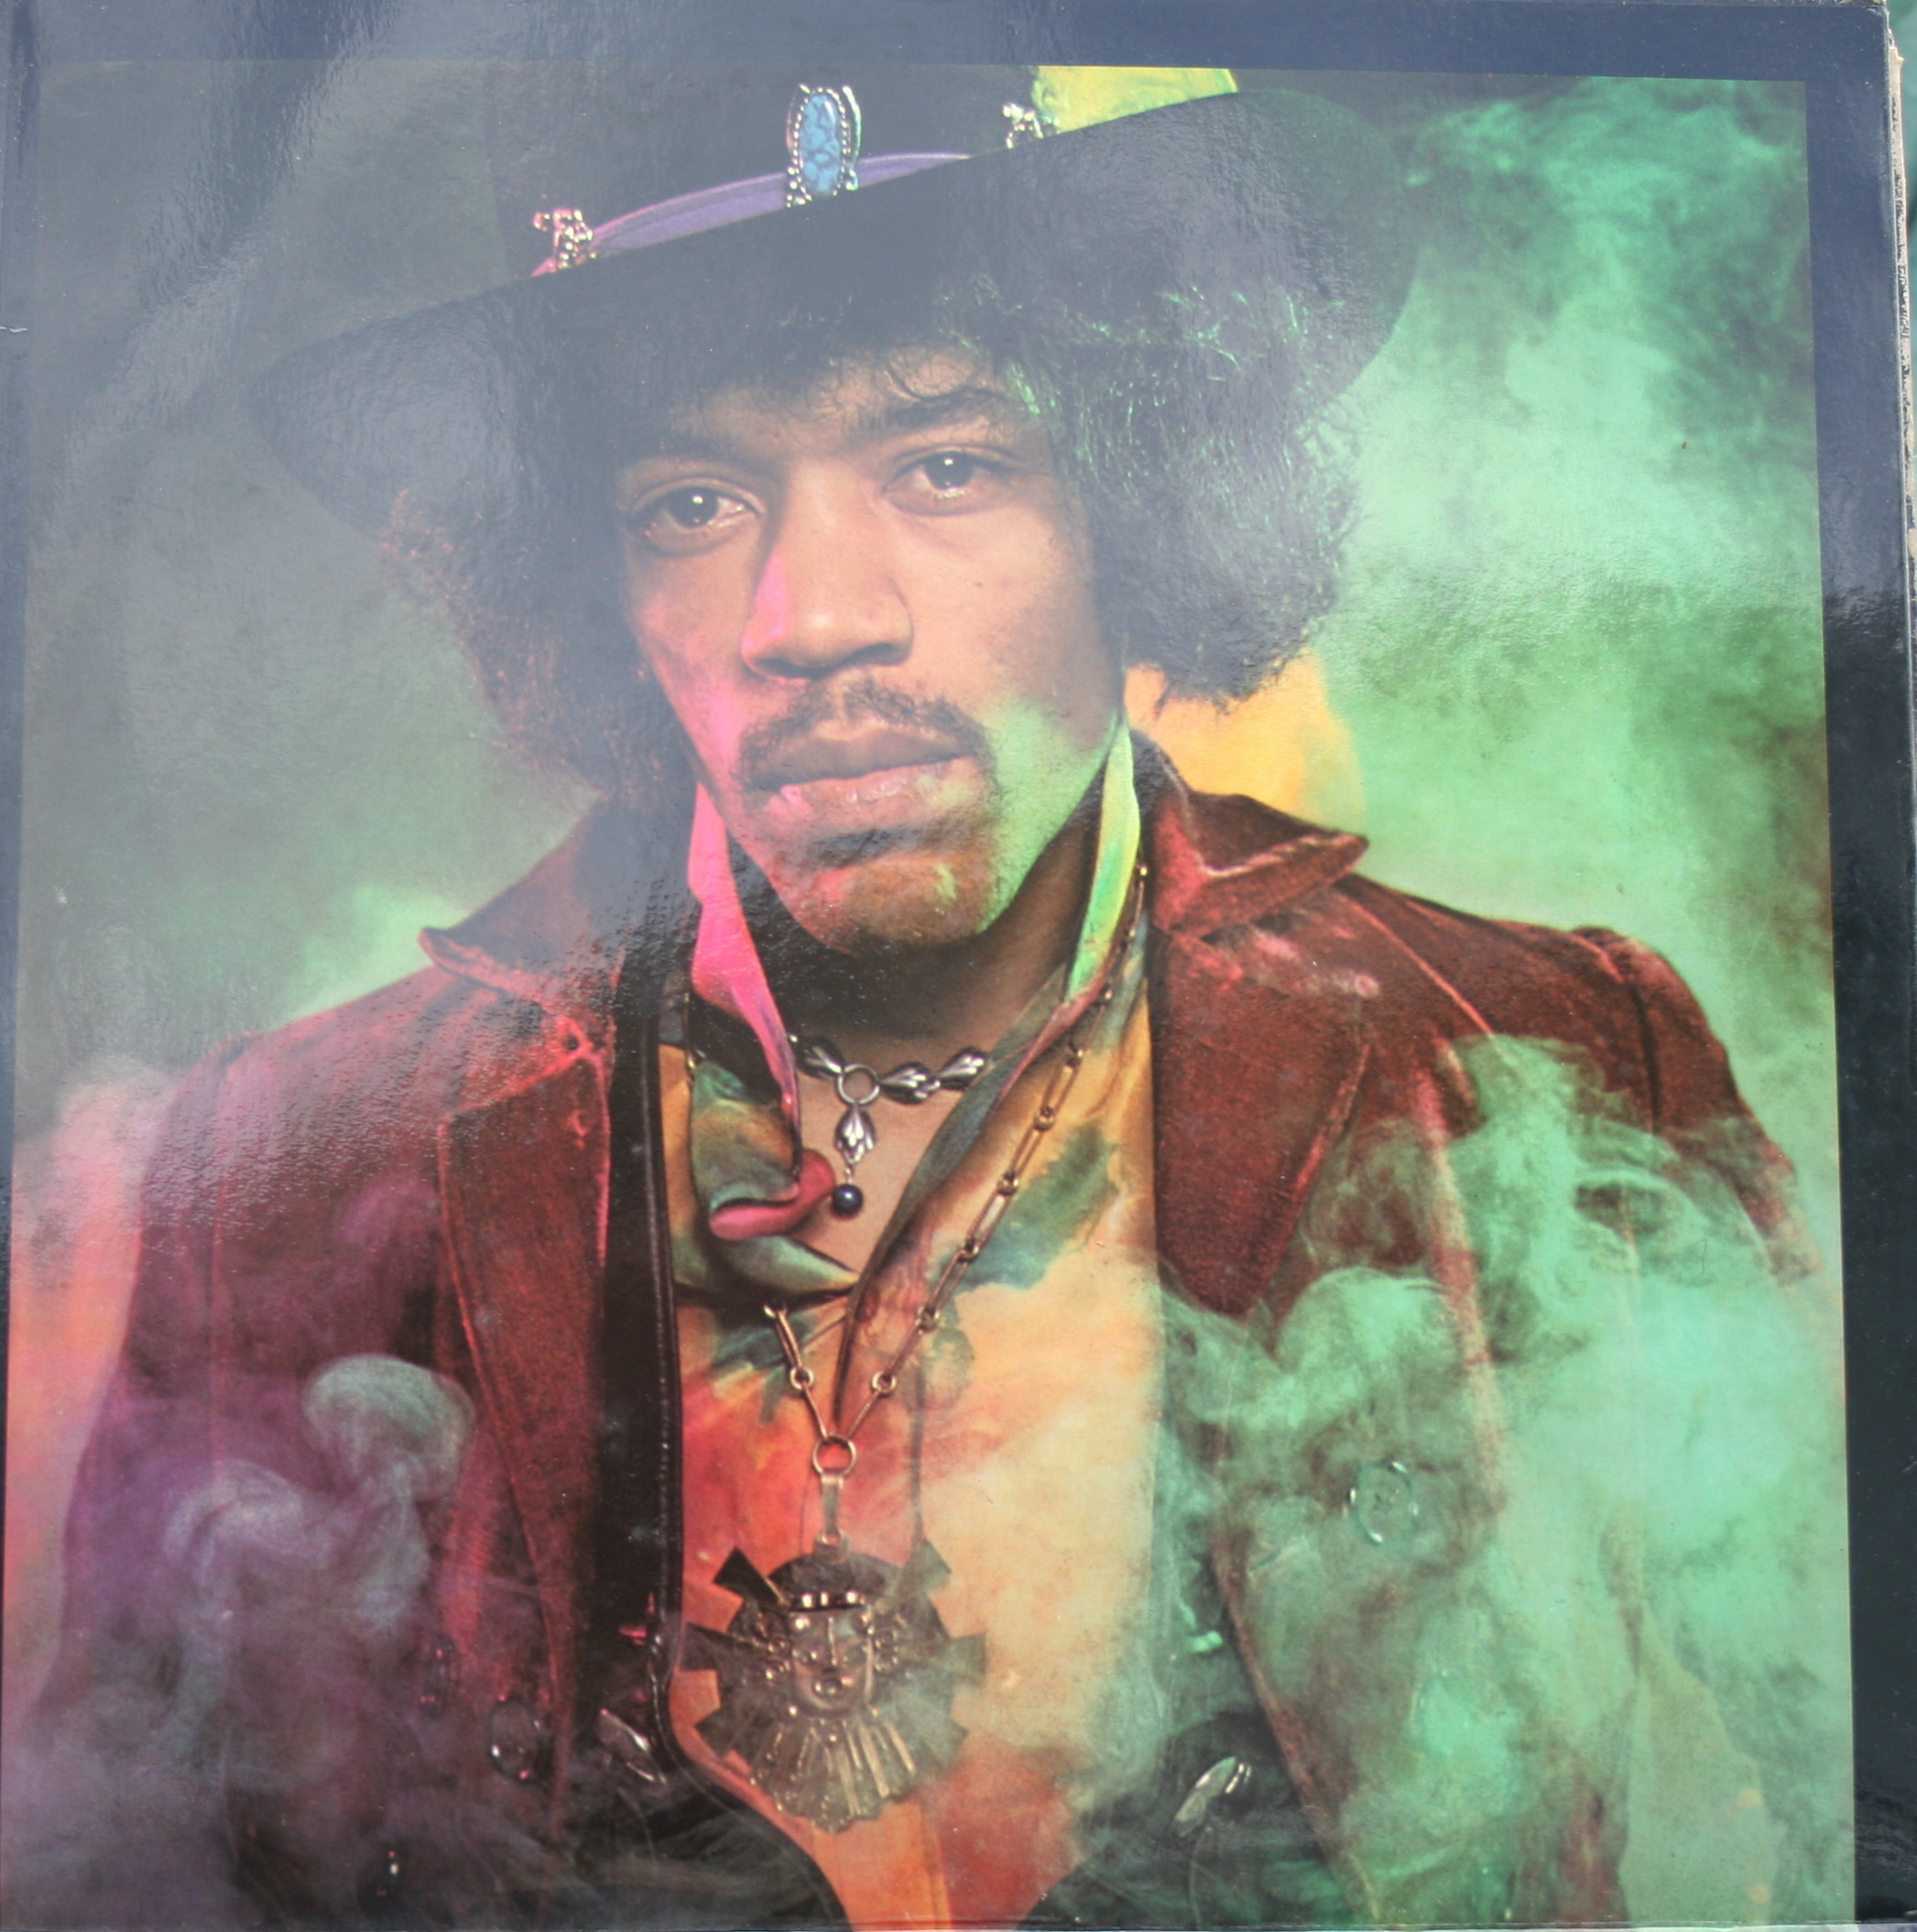 a biography of james marshall hendrix the greatest guitarist of all time Hollywood (perfect music today) 11/27/17/-james marshall jimi hendrix (born johnny allen hendrix november 27, 1942 - september 18, 1970) among the 100 greatest albums of all time, and they ranked hendrix as the greatest guitarist and the sixth greatest artist of all time.